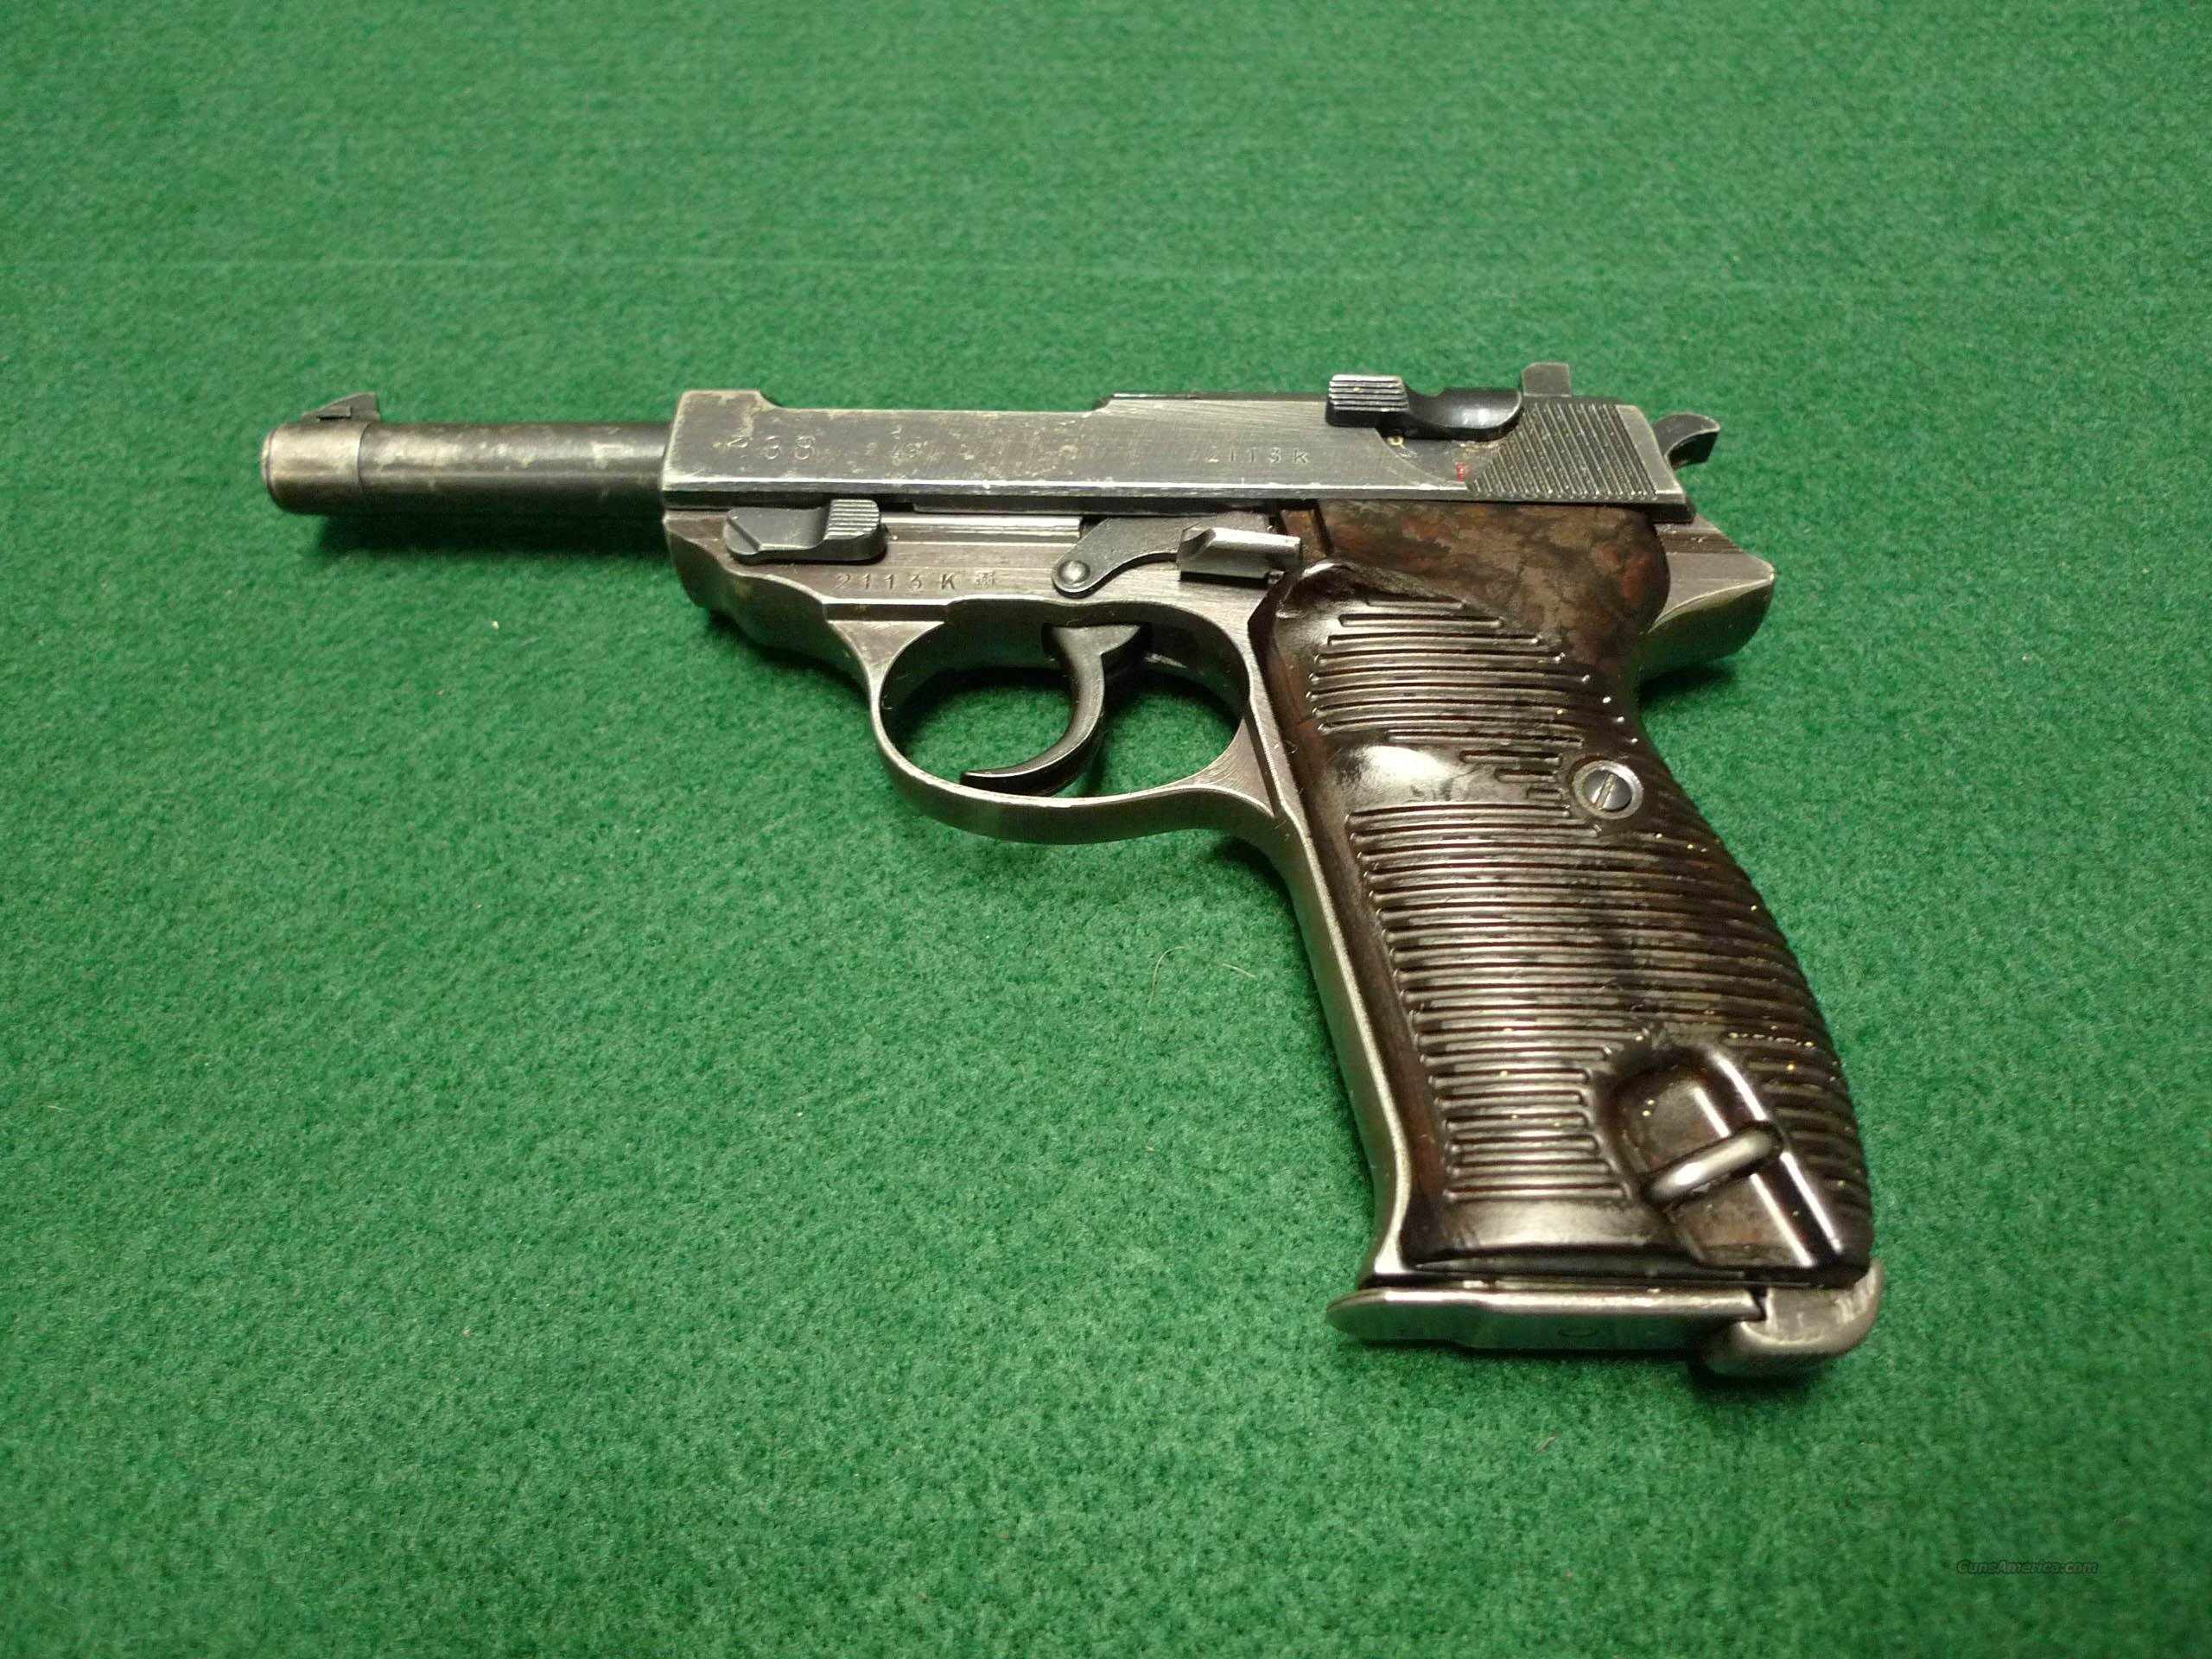 WALTHER P38 NAZI WWII AC43 1943 - GI BRING-BACK  Guns > Pistols > Walther Pistols > Pre-1945 > P-38